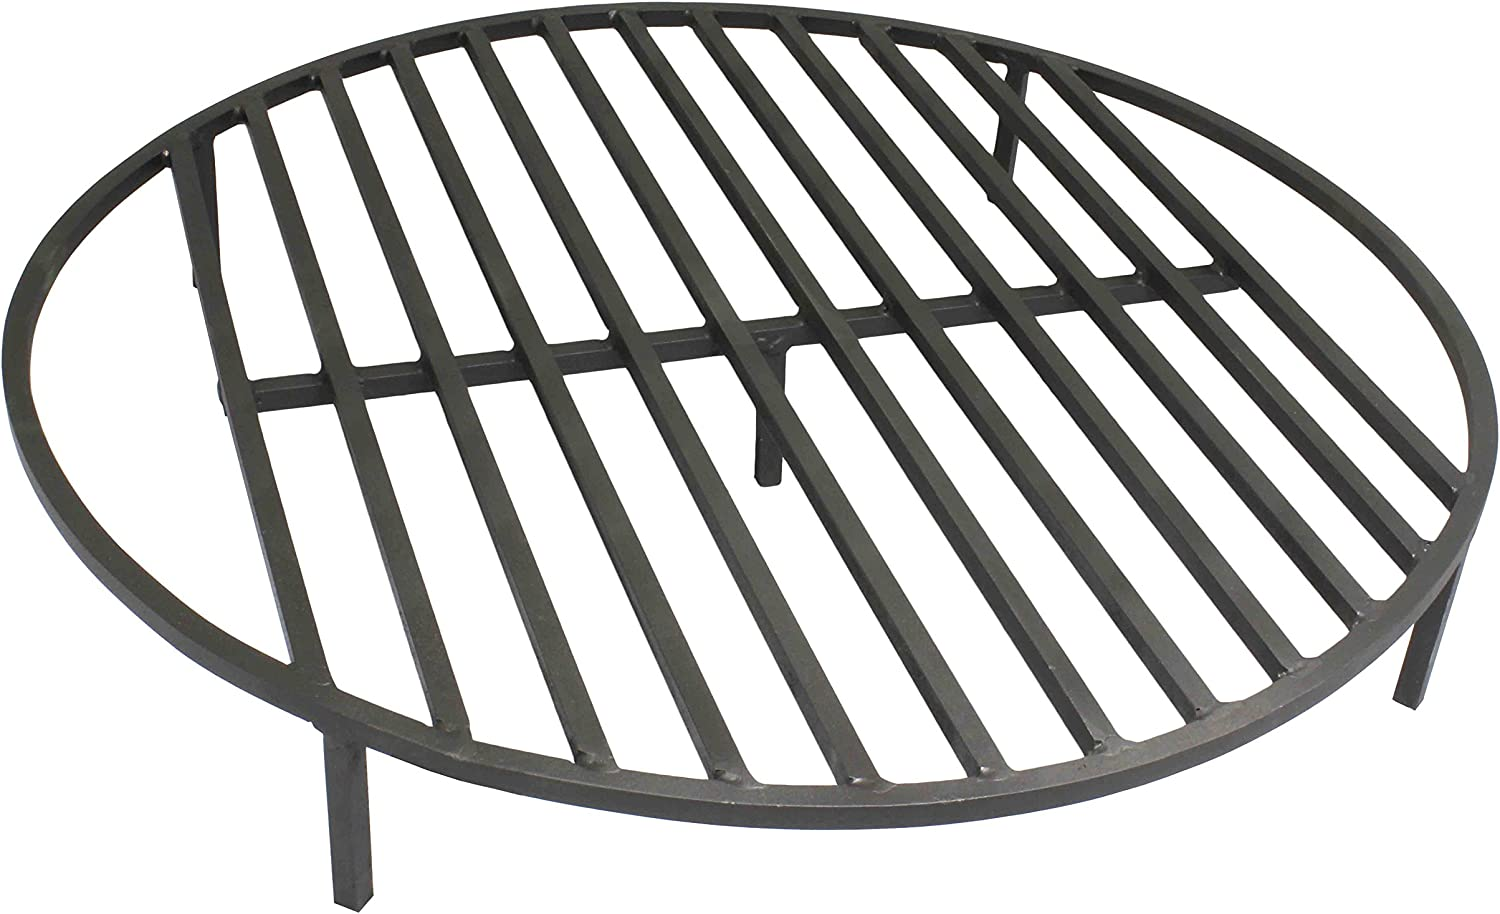 Titan Attachments Round Fire Pit Grate 30 Heavy Duty Grill Cooking Campfire Camp Ring 1 2 Steel